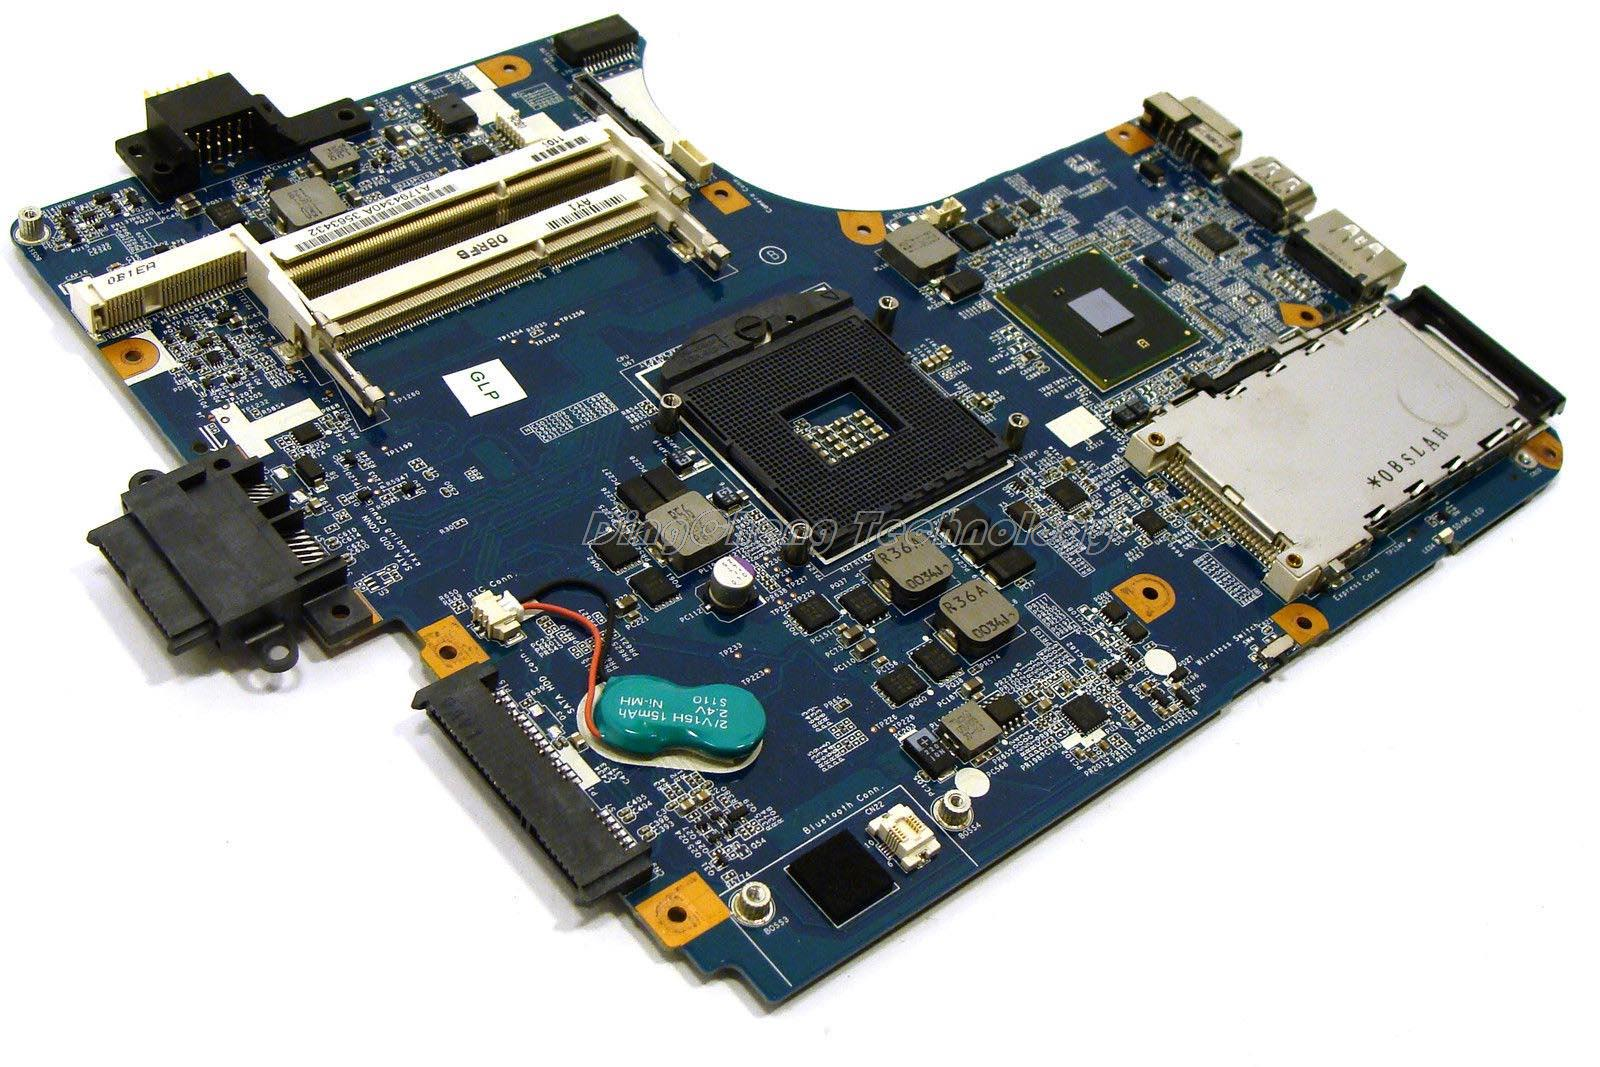 MBX 223 laptop Motherboard For Sony M971 MBX-223 1P-0106J00-6011 A1794340A REV 1.1 for intel cpu with integrated graphics card